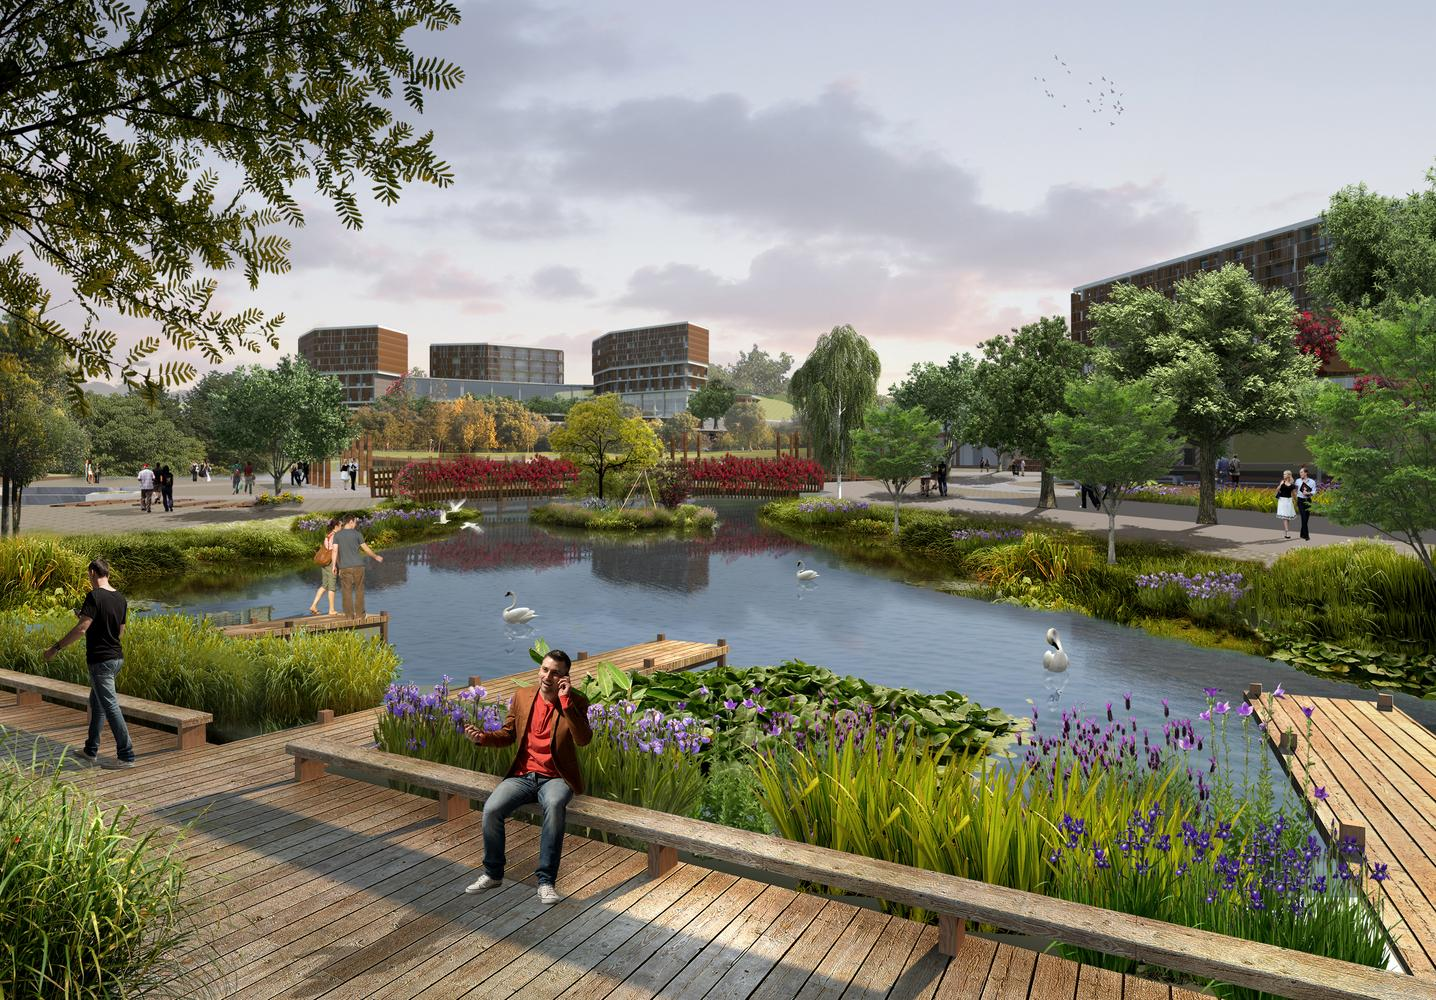 A 1200sq m biological pond uses plants with fibrous roots and reeds to keep the water clean / Project Design Group